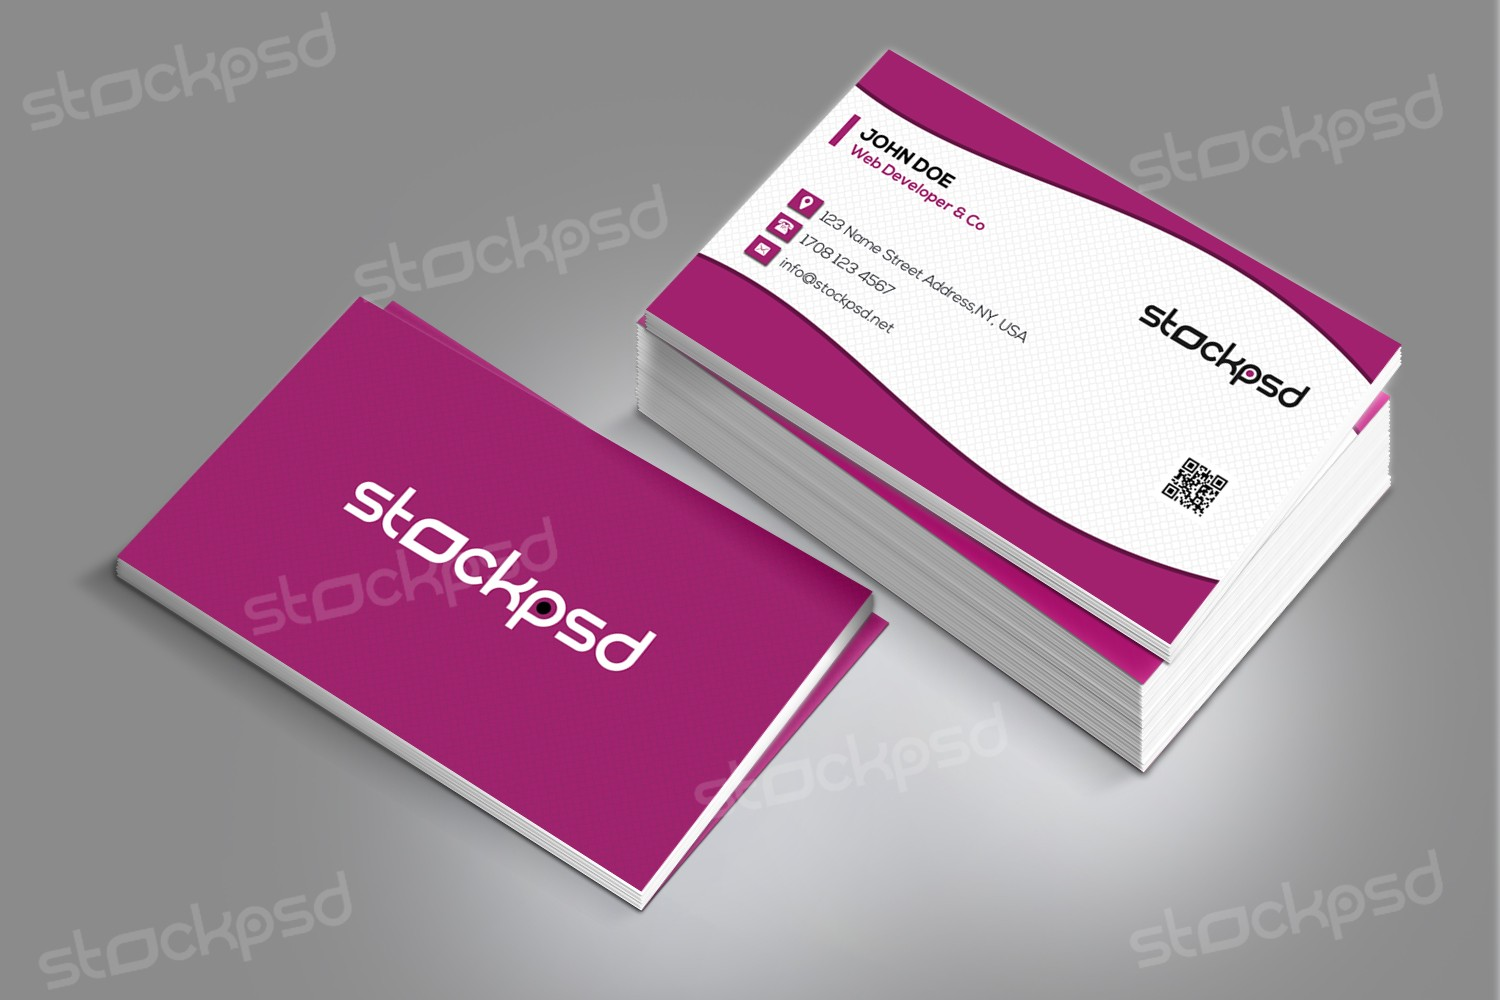 Stockpsd freebie templates download free psd business cards corporate business card vol 8 free psd cheaphphosting Image collections